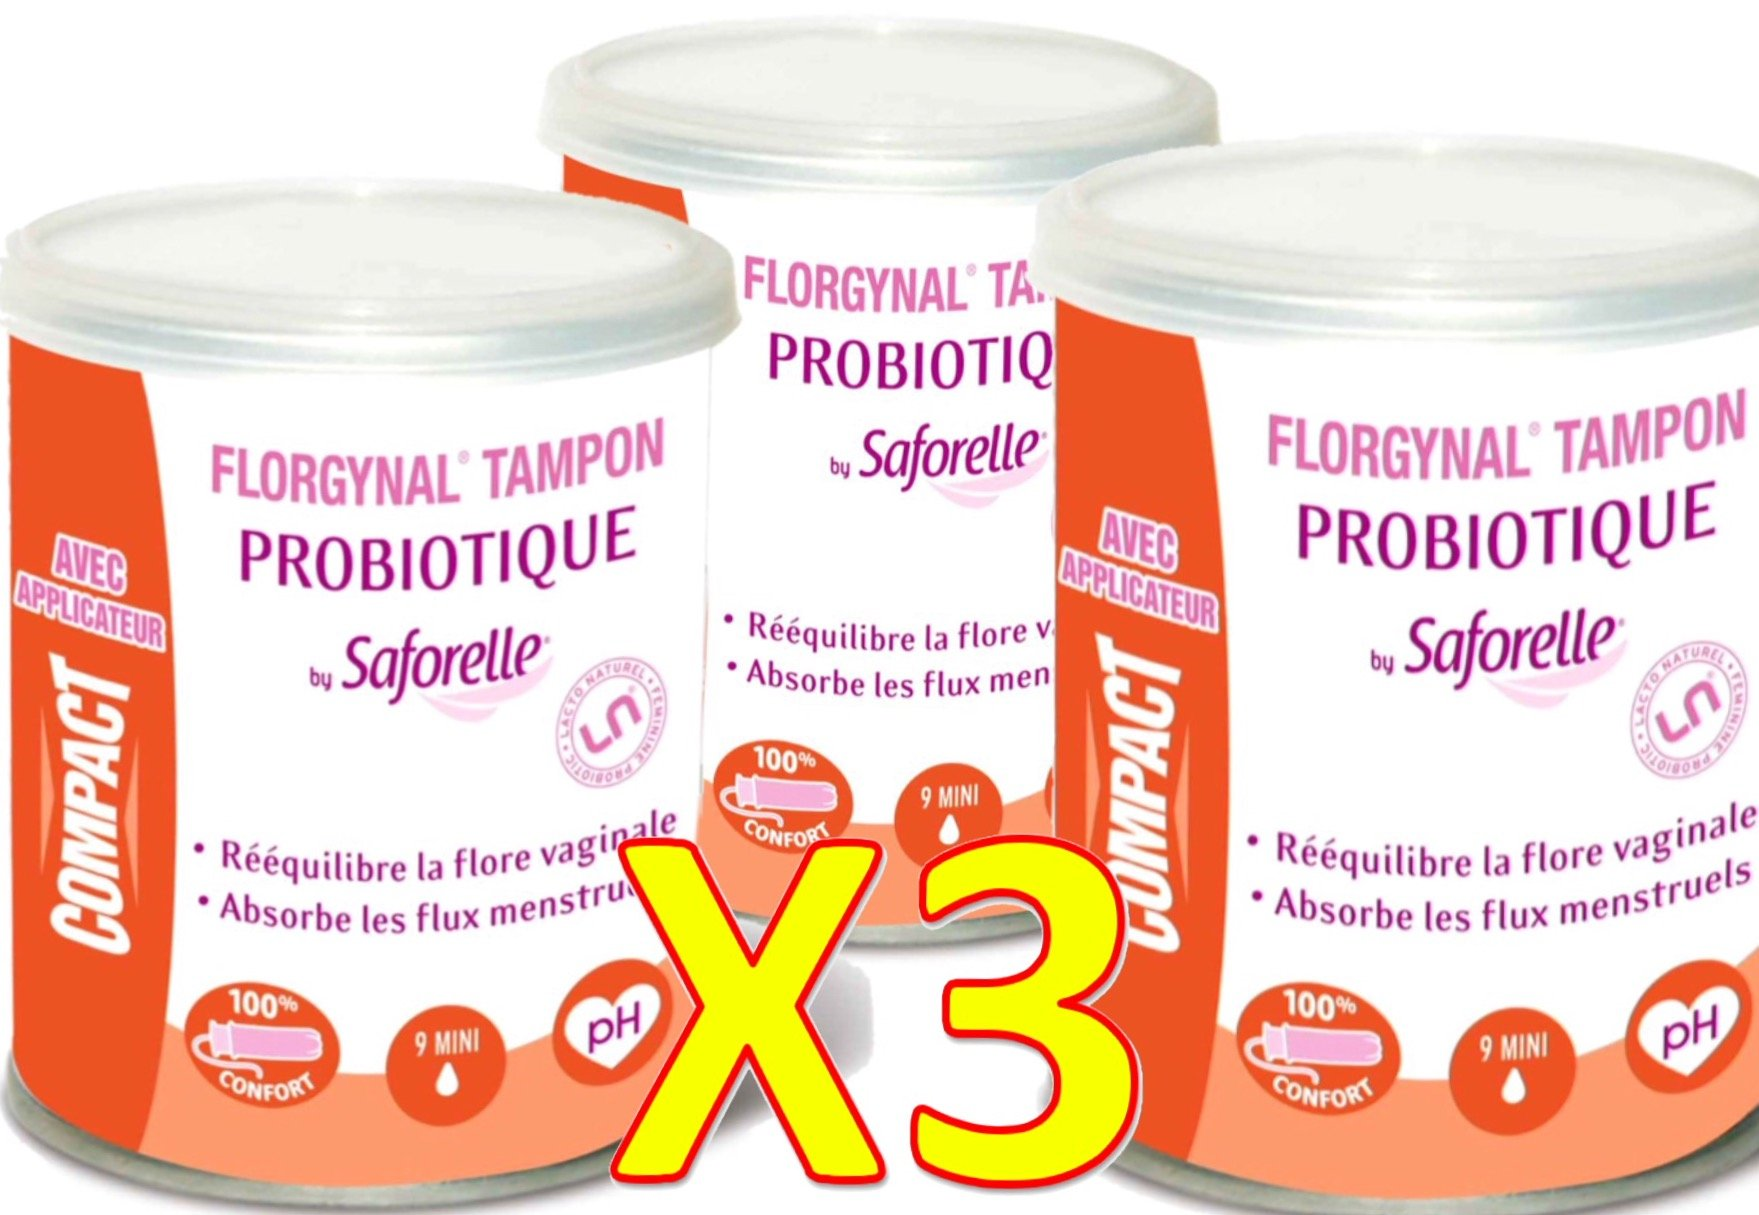 Saforelle Florgynal Probiotic Tampon Regular-with applicator-Mini-Box of 9Mini-Set of 3boxes) by Saforelle